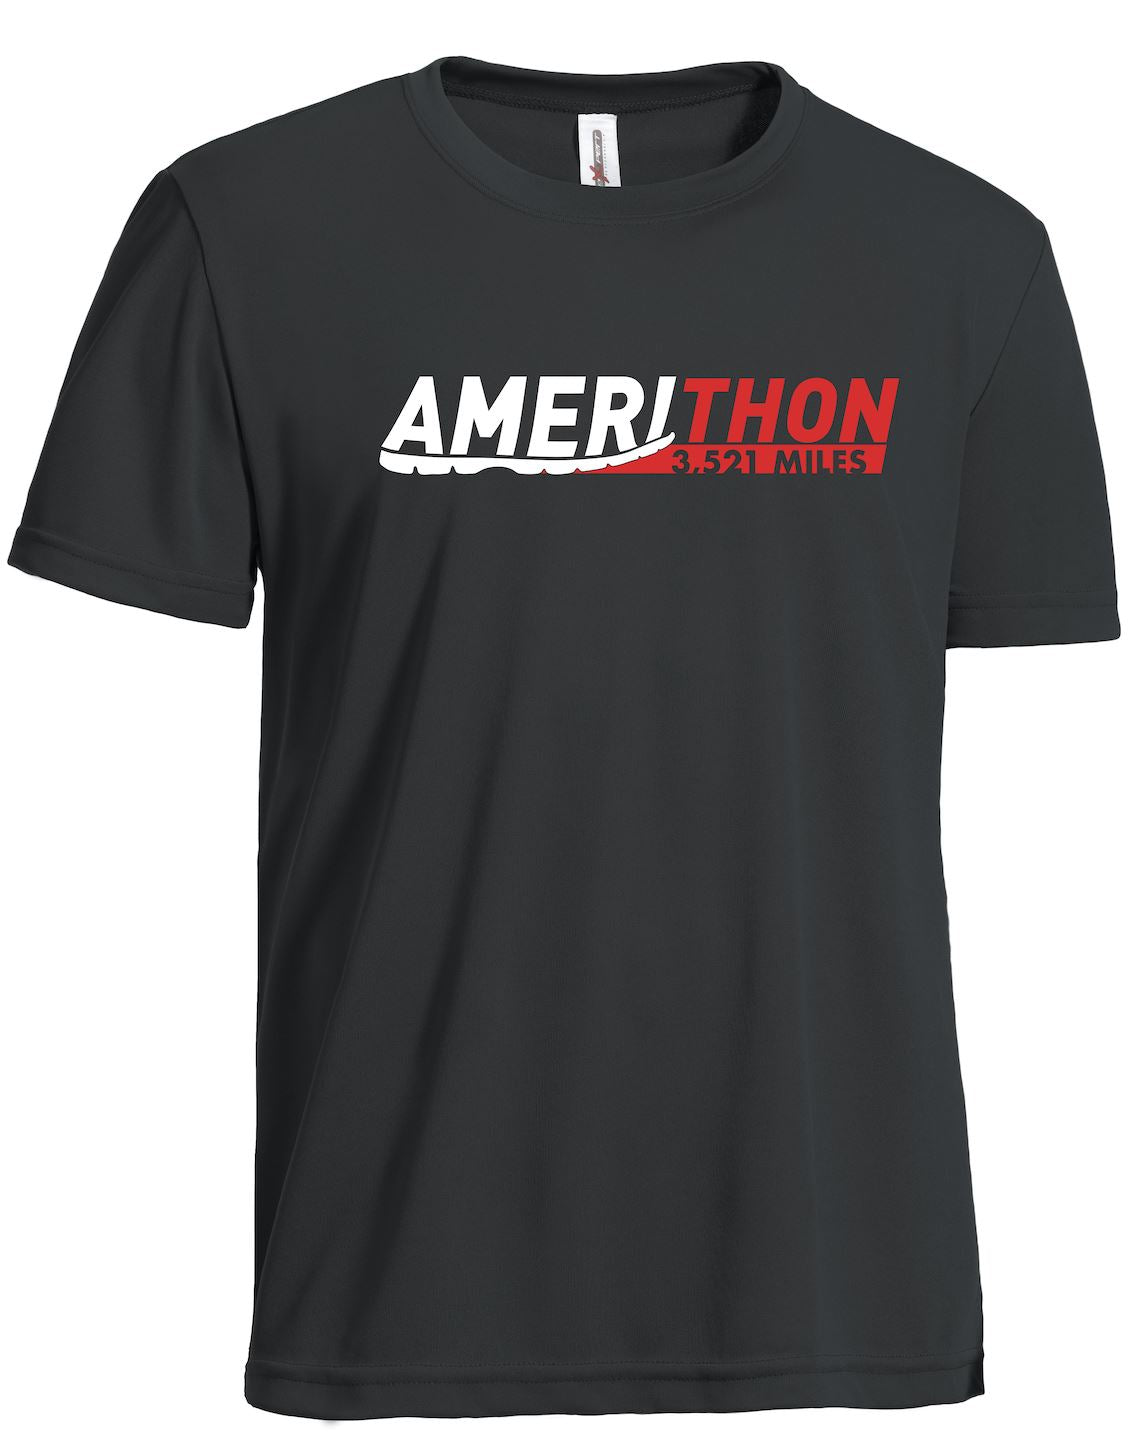 Amerithon Challenge: Get It All Registration Registrations Run The Edge